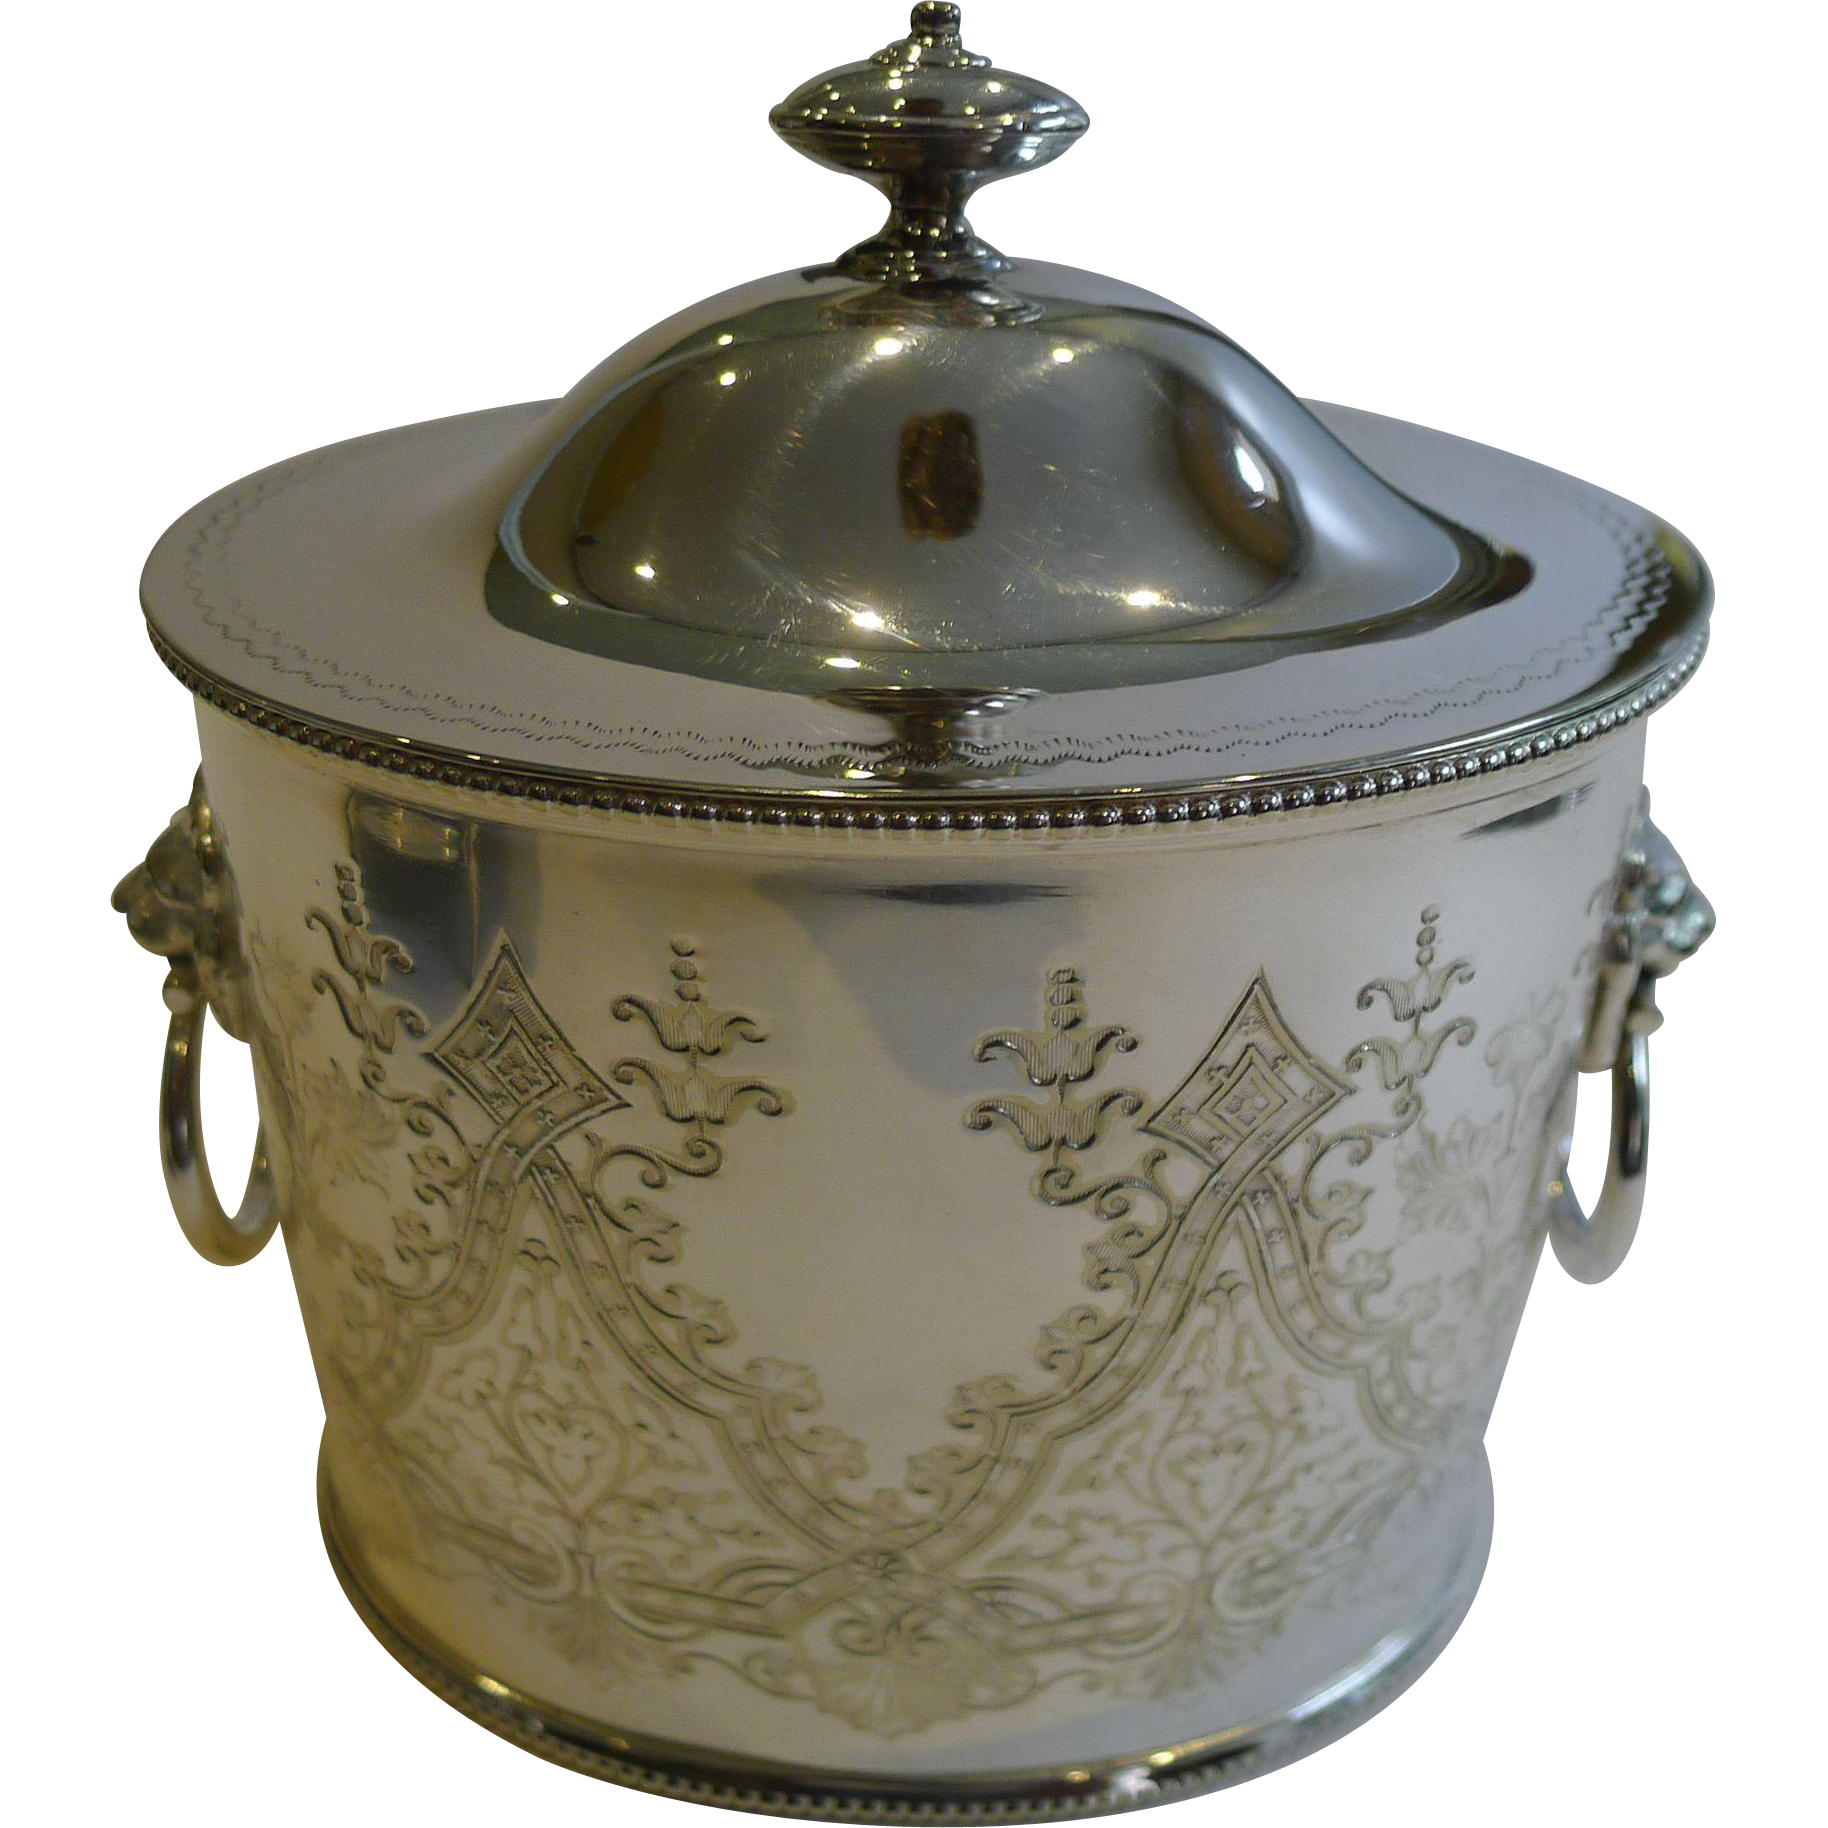 Antique English Silver Plated Tea Caddy by Joseph Hirons, Henry Hodson Plante & Co.